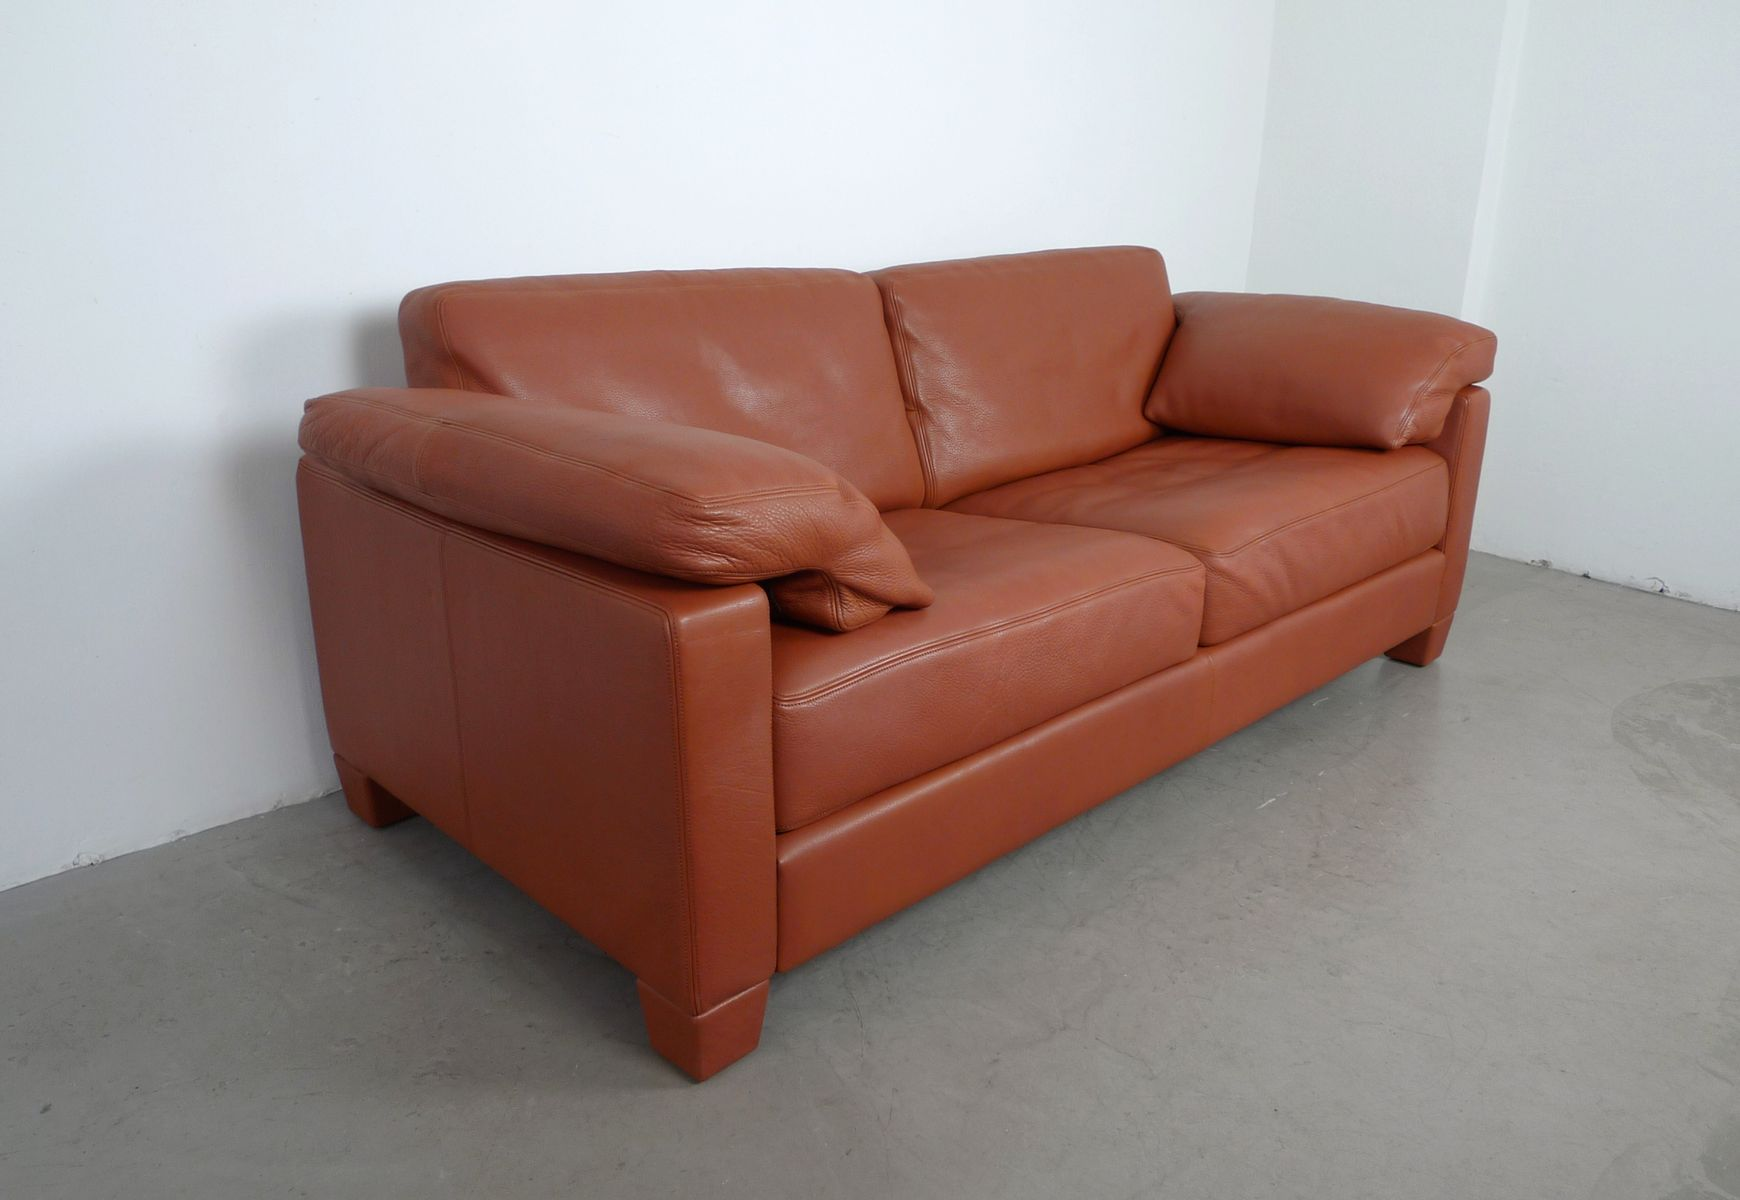 cognac leder ds 17 sofa von de sede 1990er bei pamono kaufen. Black Bedroom Furniture Sets. Home Design Ideas